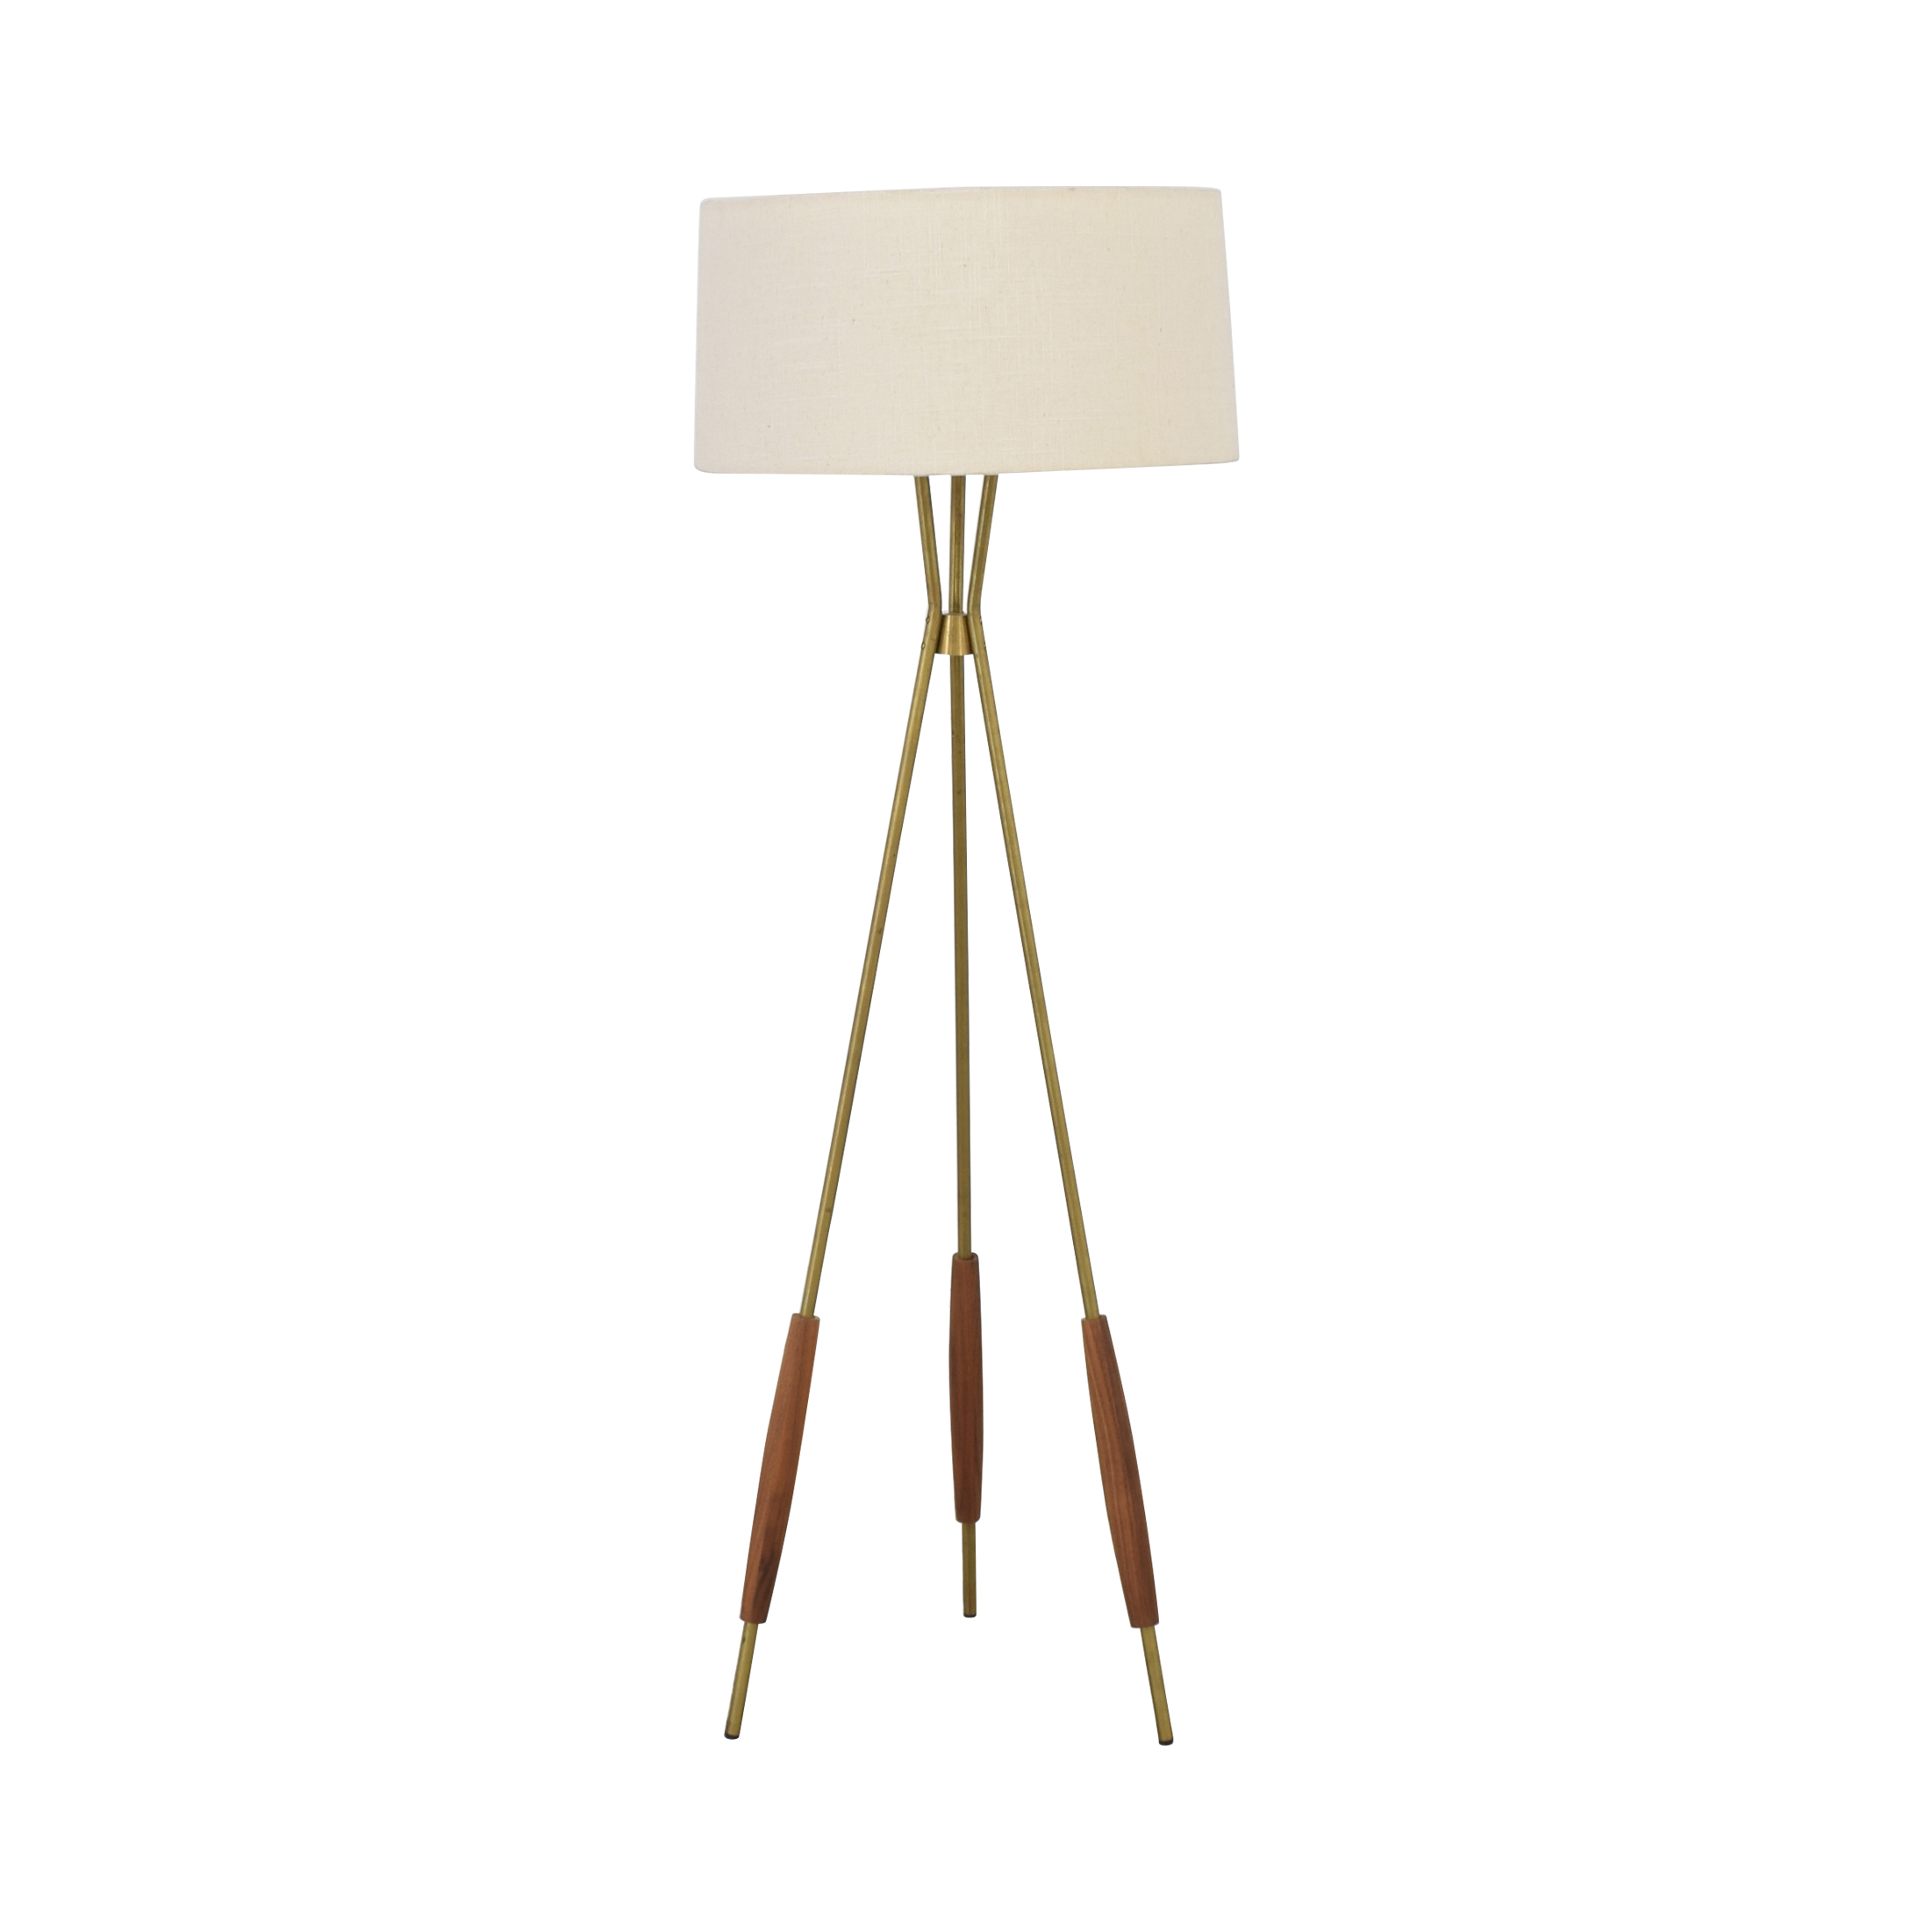 Schoolhouse Electric Mulberry Floor Lamp / Decor